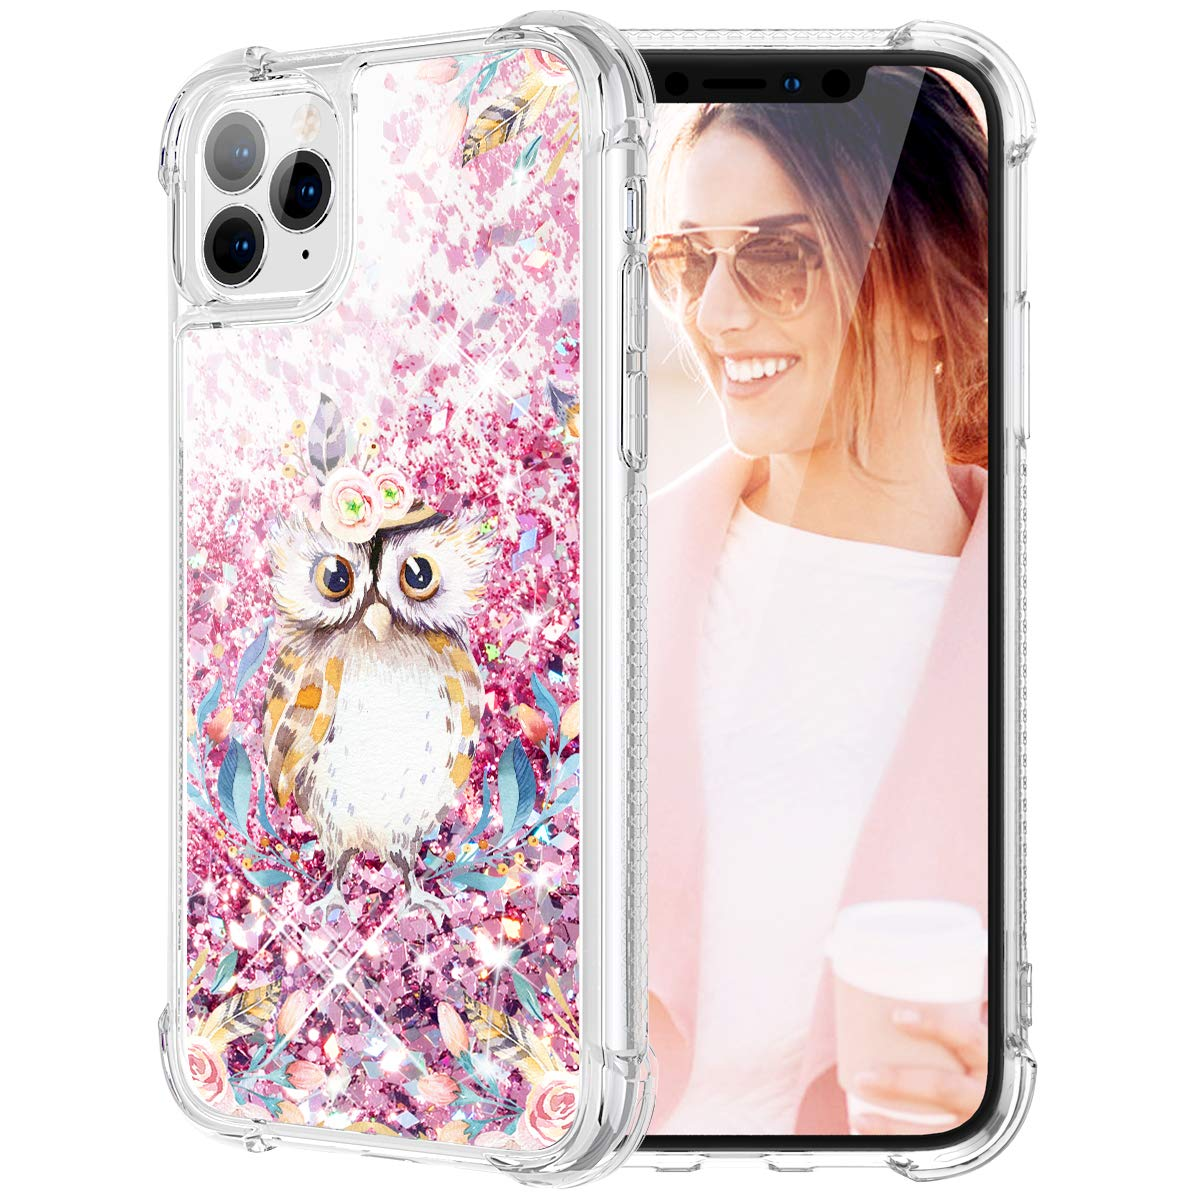 Caka Flower Case for iPhone 11 Pro Max Floral Glitter Case Bling Sparkle Flower Pattern Liquid TPU Cushion Protective Women Girls Luxury Flowing Pink Phone Case for iPhone 11 Pro Max (Owl)